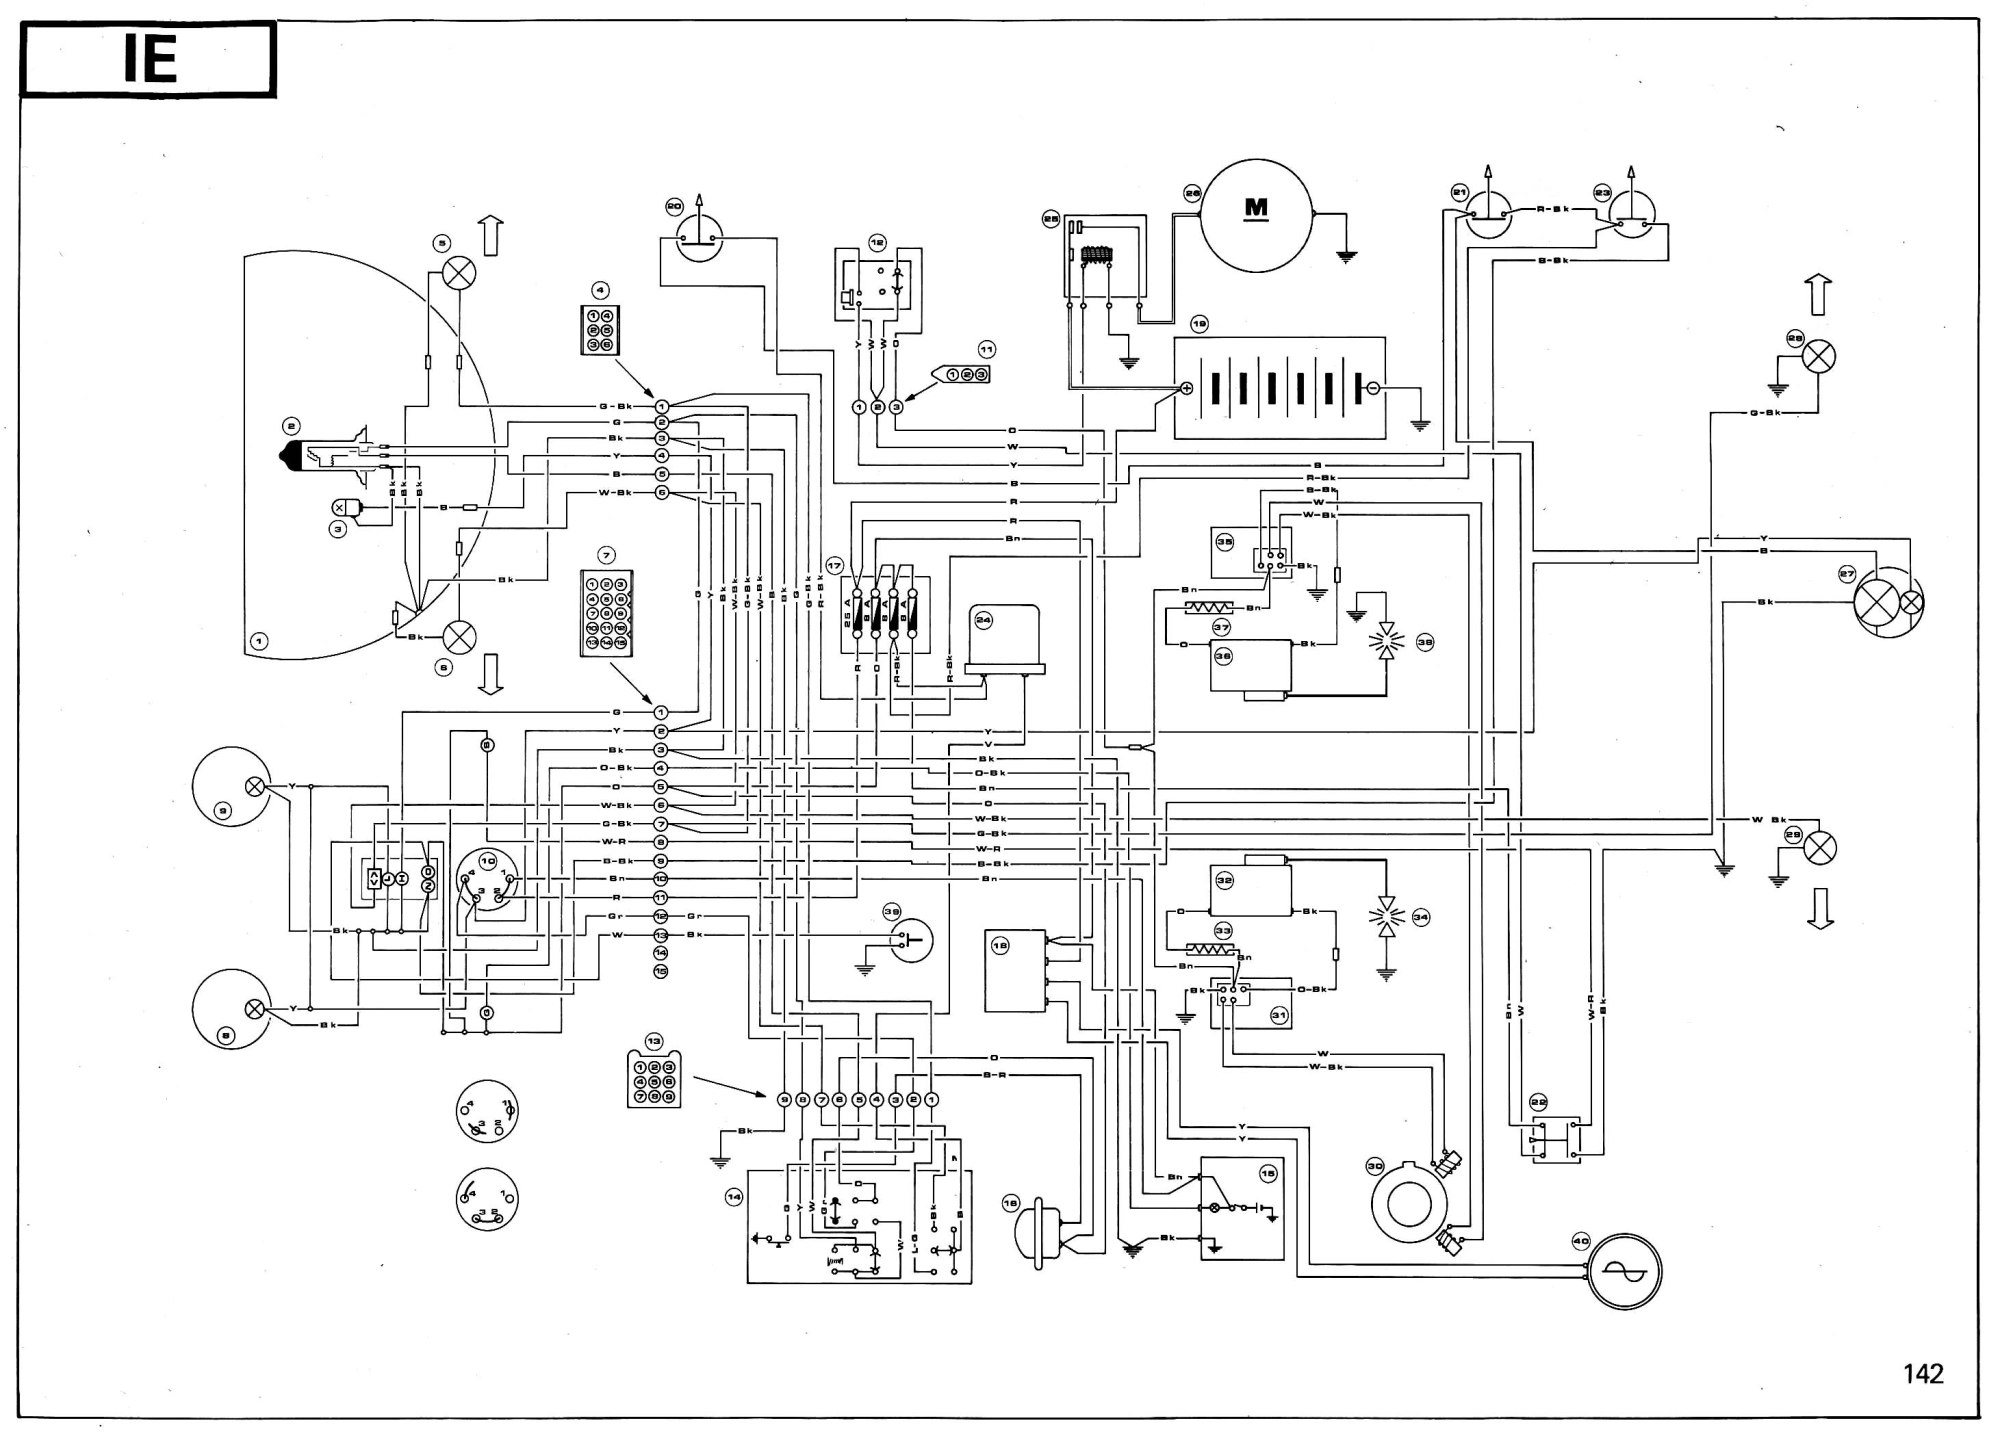 hight resolution of 99 zx7r wiring diagram wiring library rh 20 bloxhuette de 2002 kawasaki zx7r wiring diagram 2001 kawasaki zx7r wiring diagram